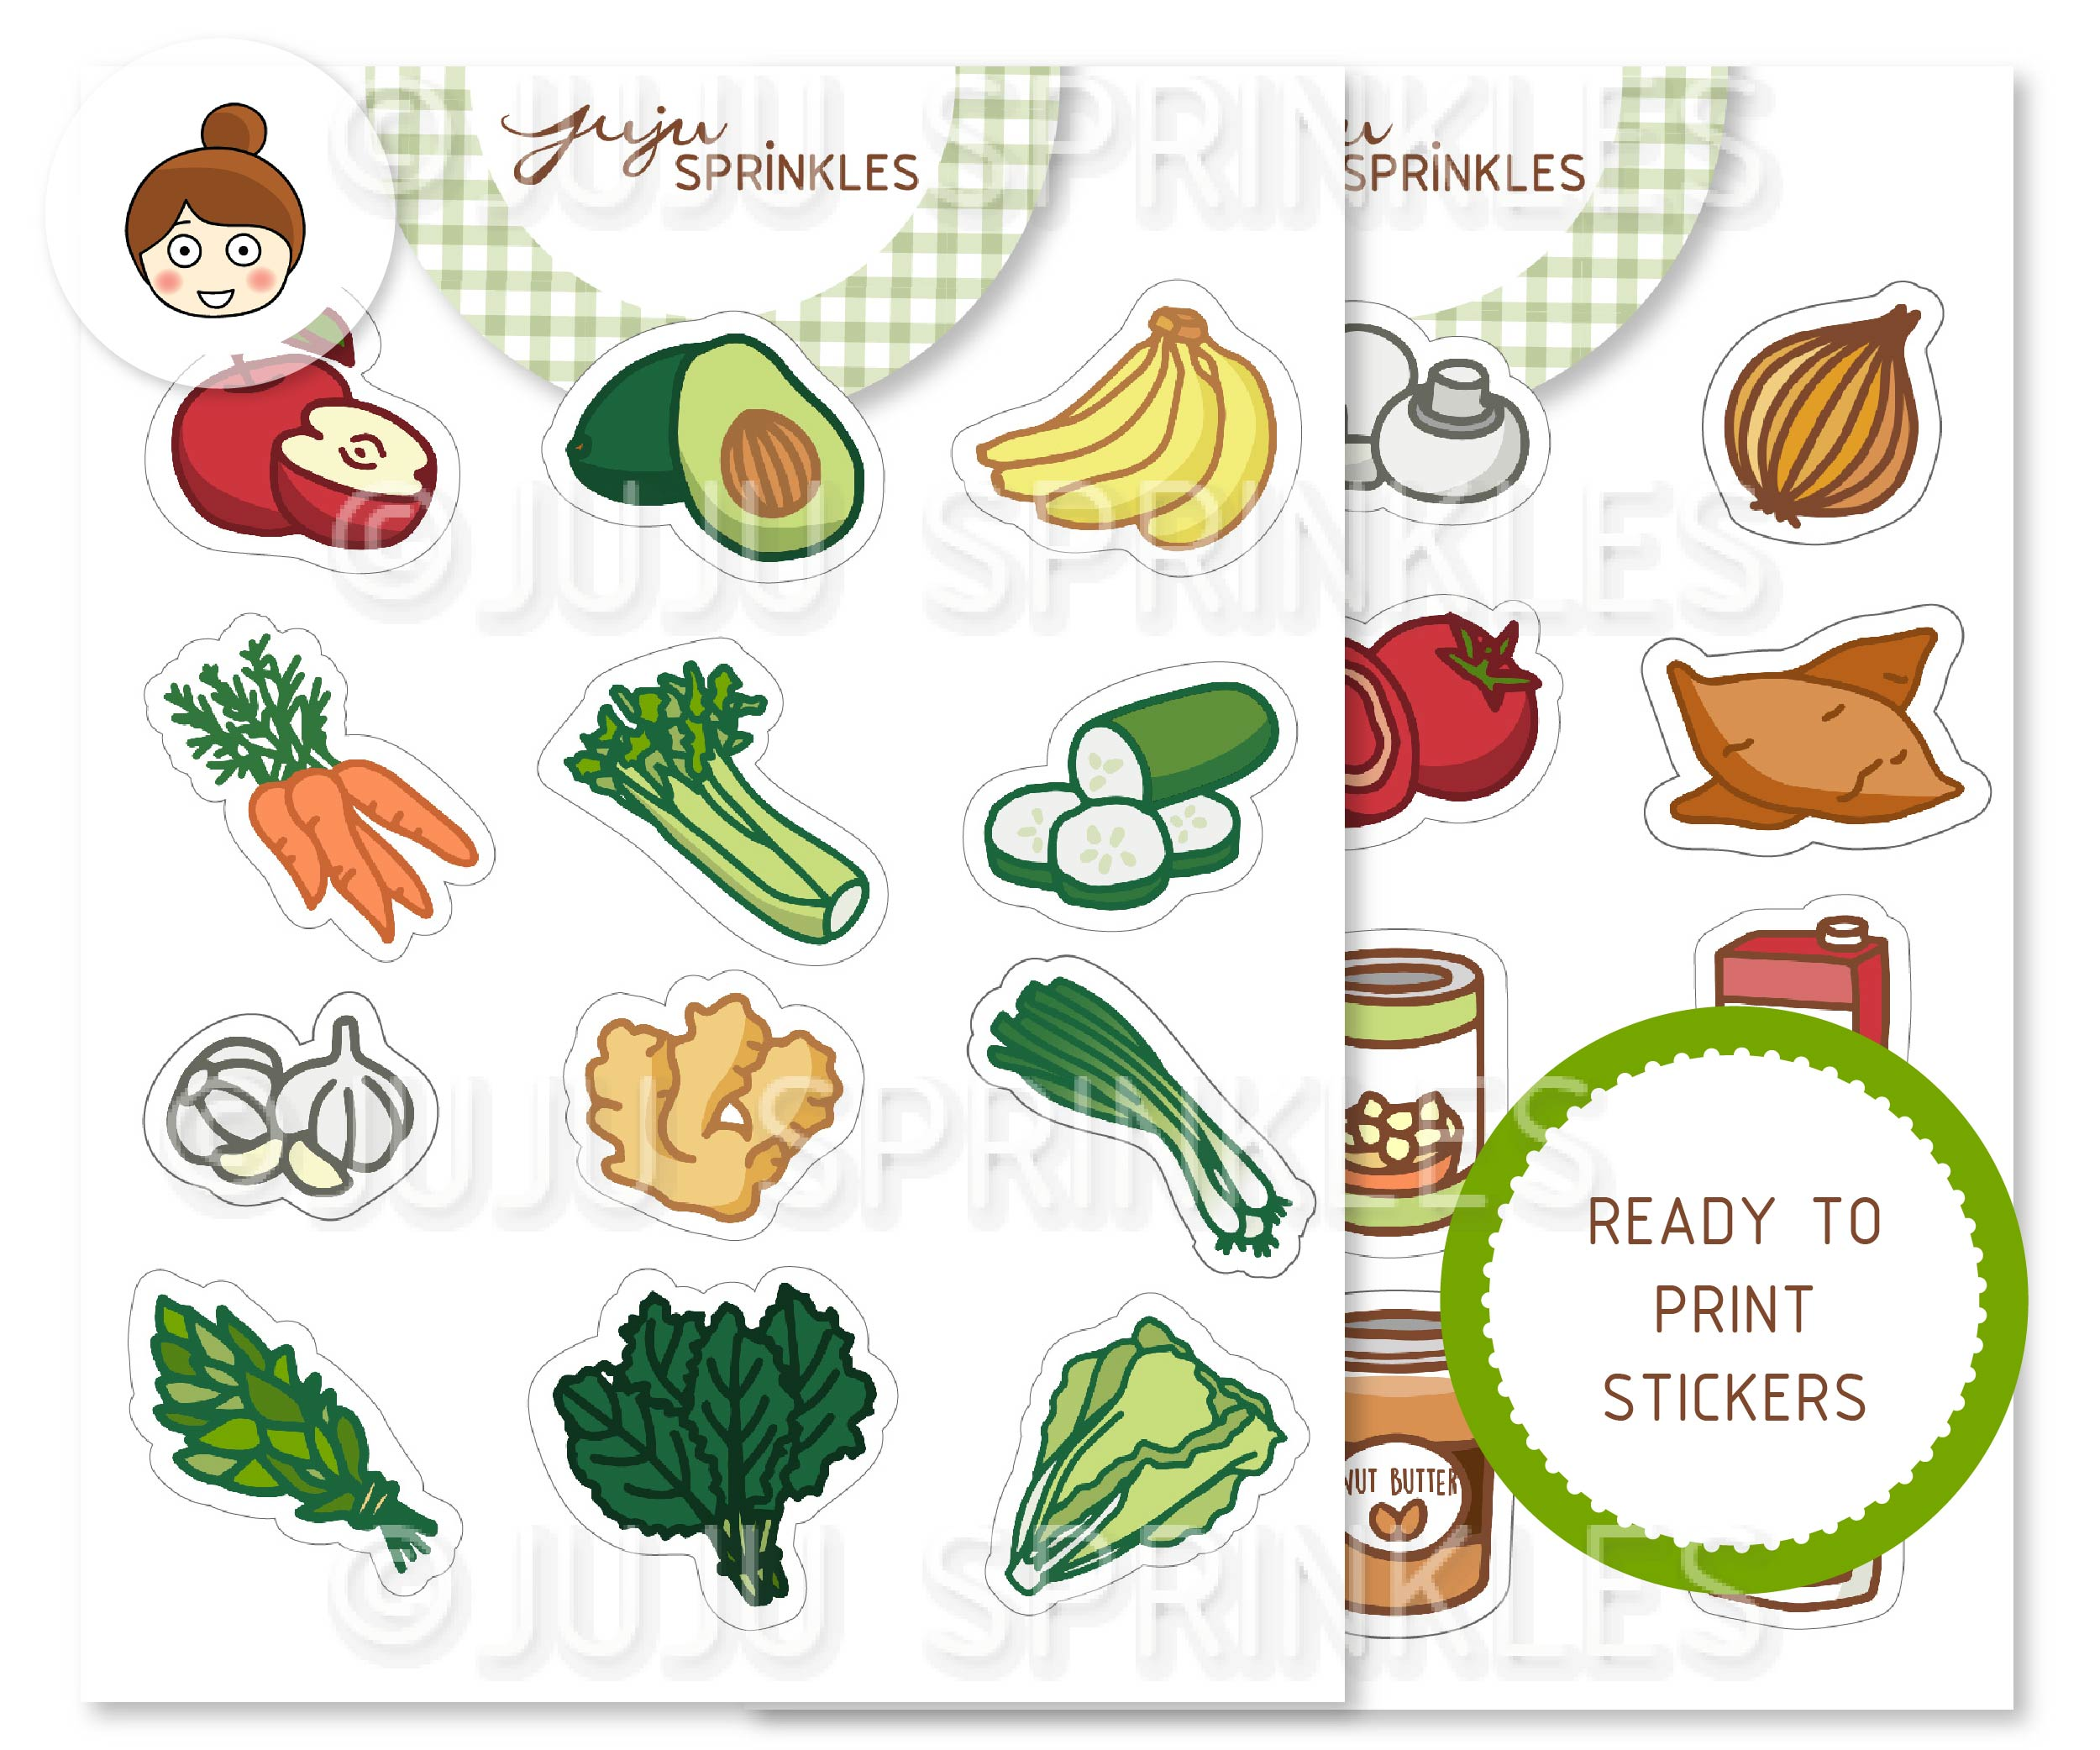 grocery shopping clipart and sticker set – juju sprinkles